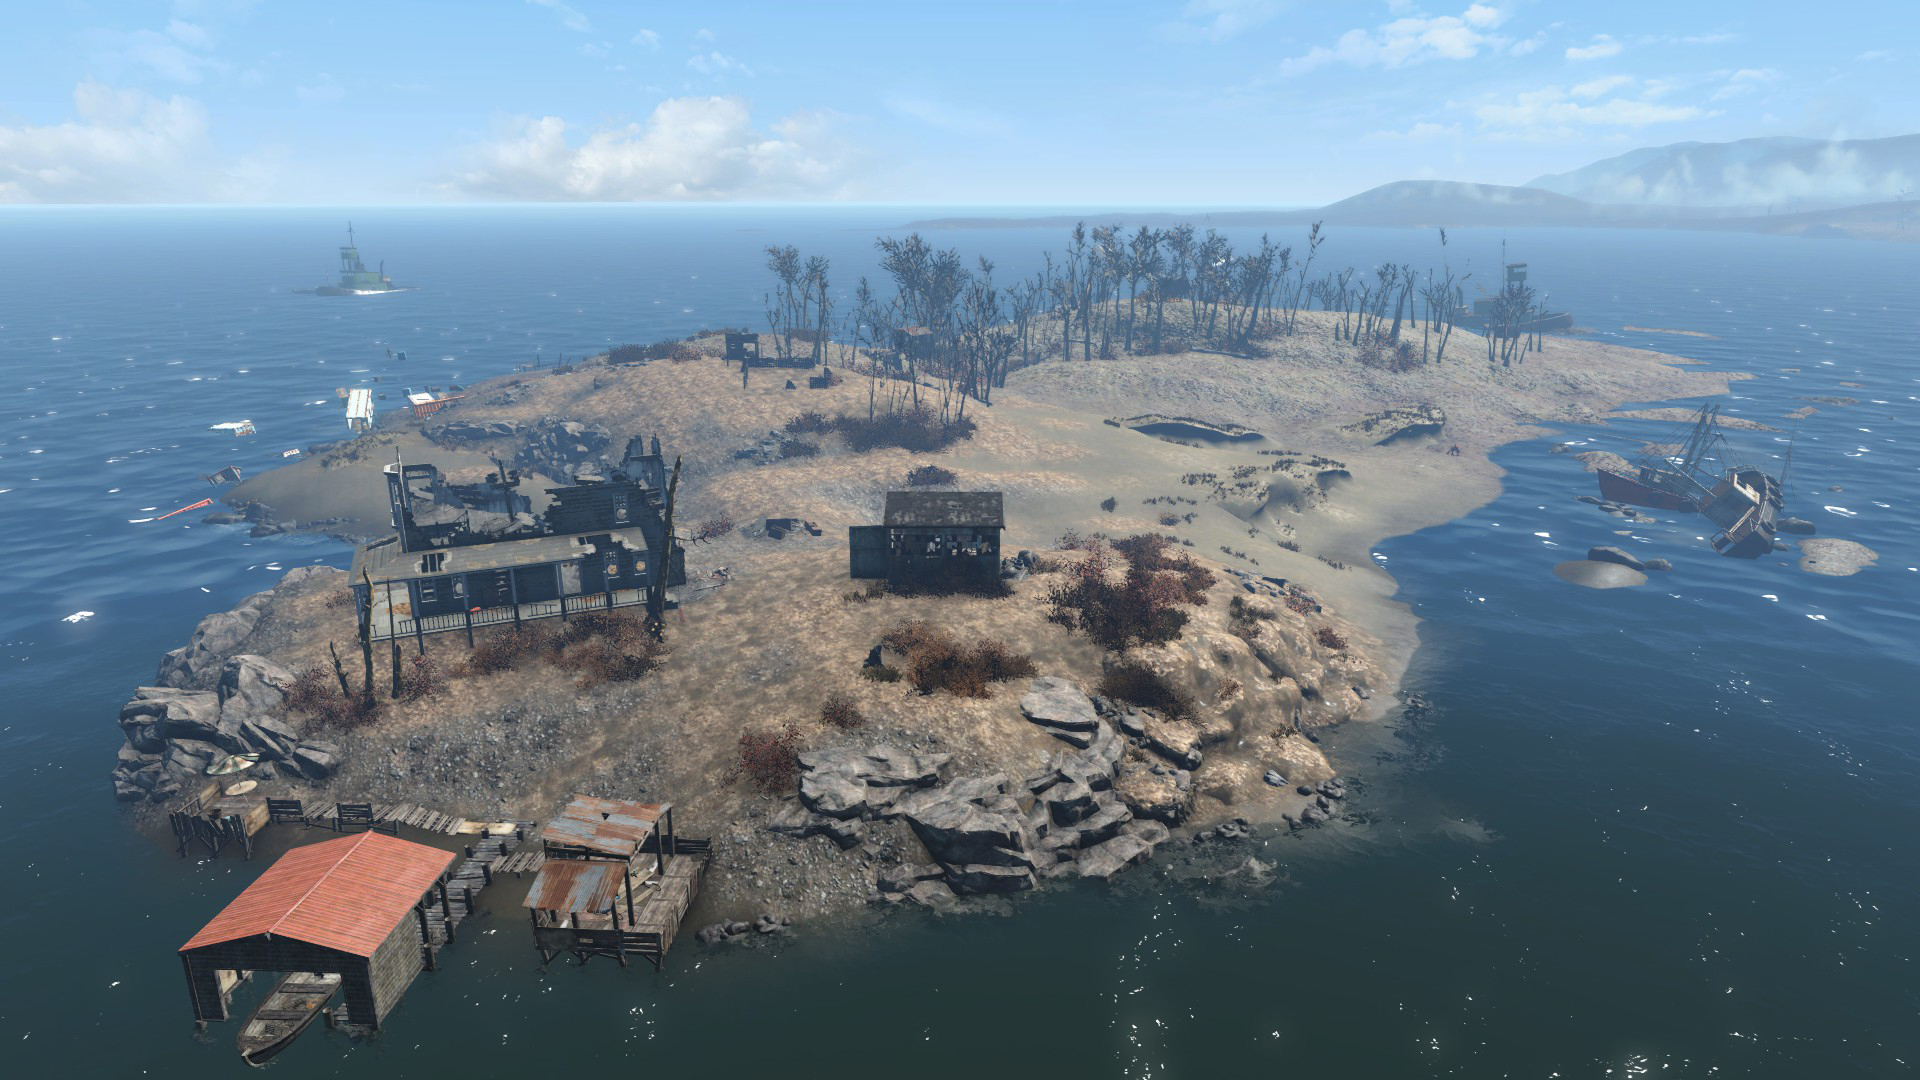 Spectacle Island Map Spectacle Island | Fallout Wiki | FANDOM powered by Wikia